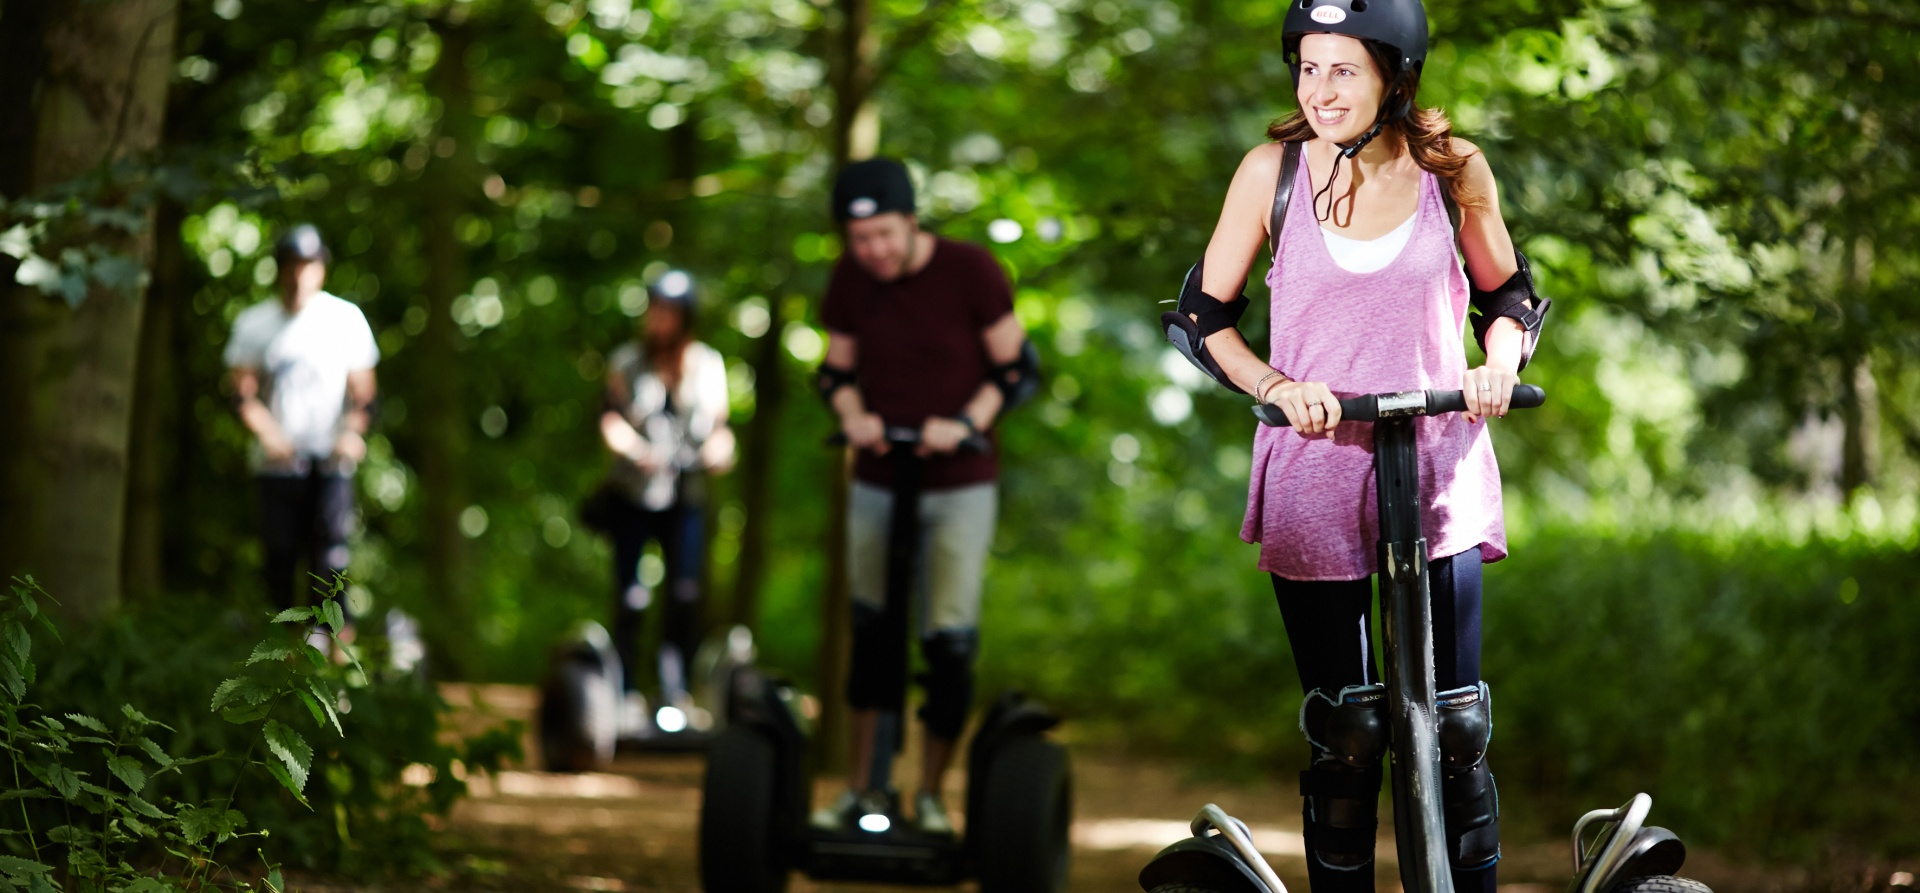 Segway Adventure For 2 Special Offer-1